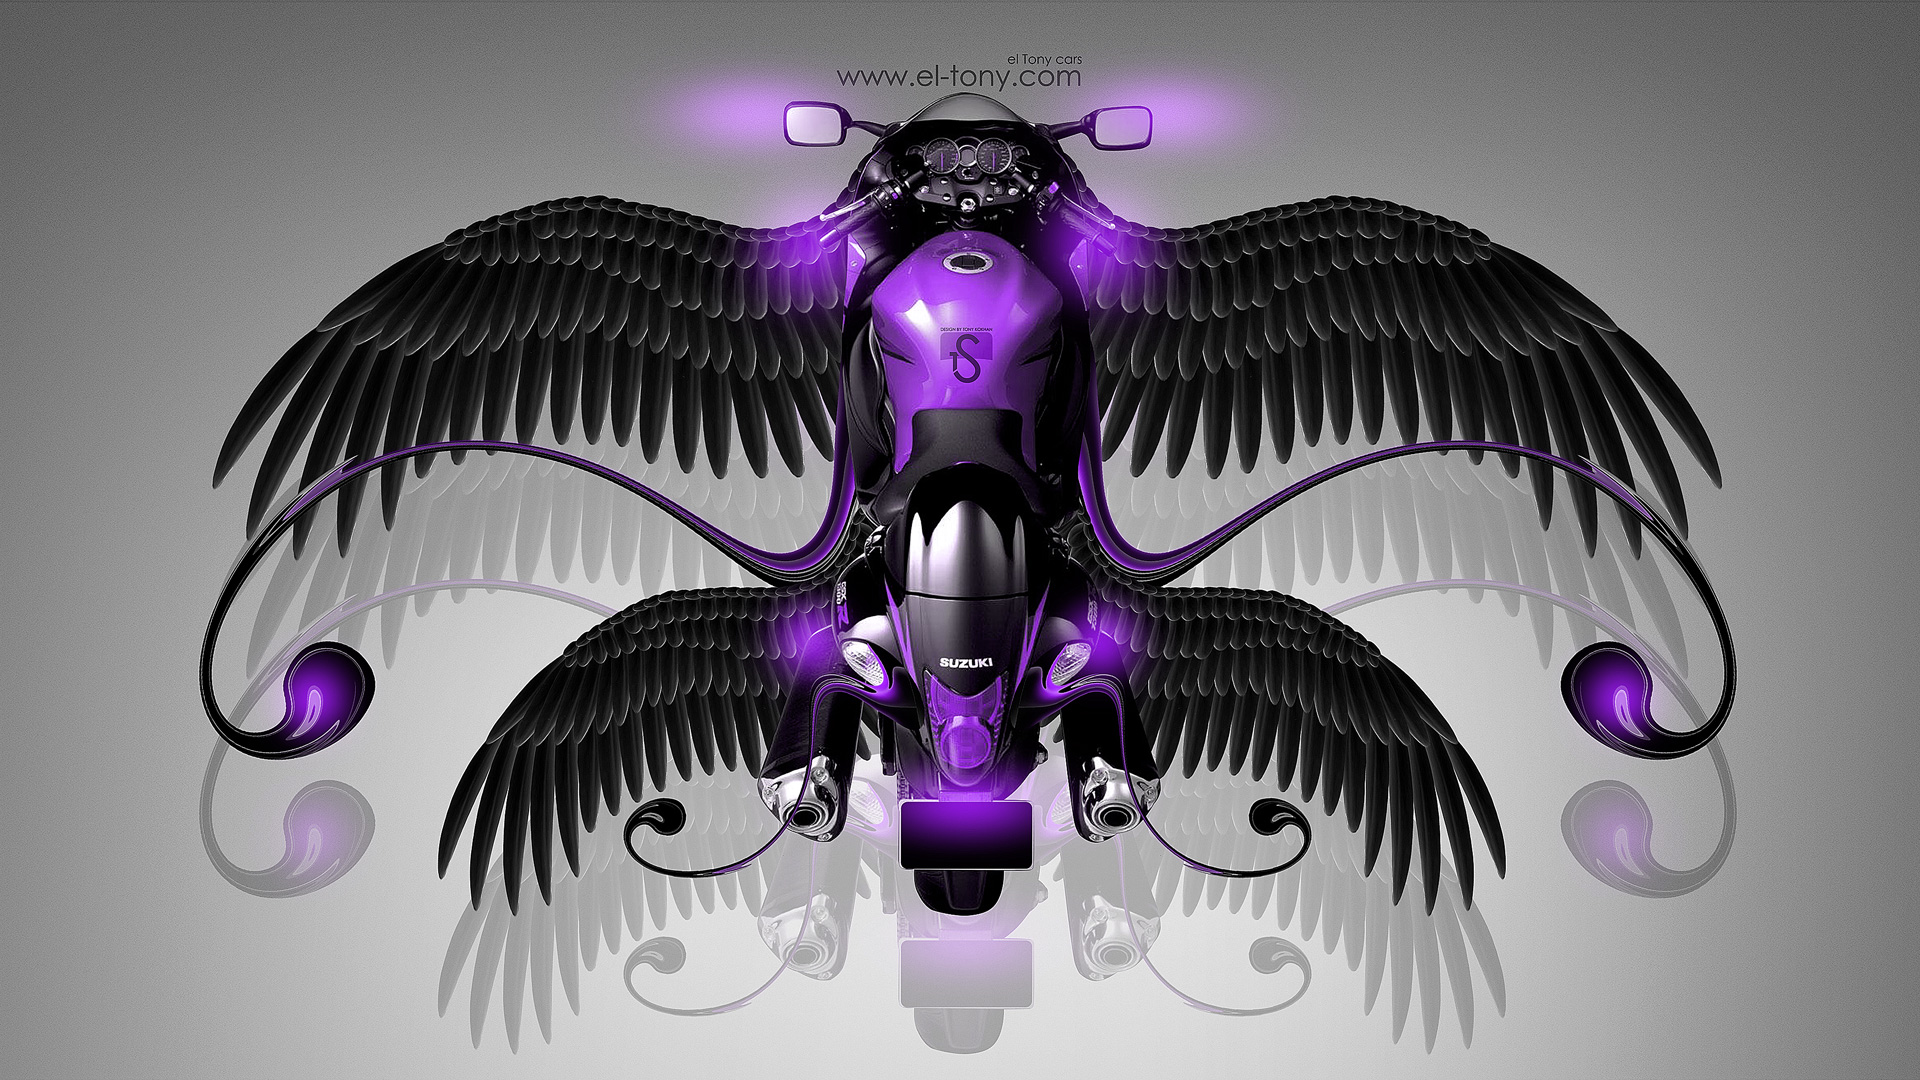 Wonderful Suzuki Hayabusa Fantasy Moto Fly 2014 Violet Neon